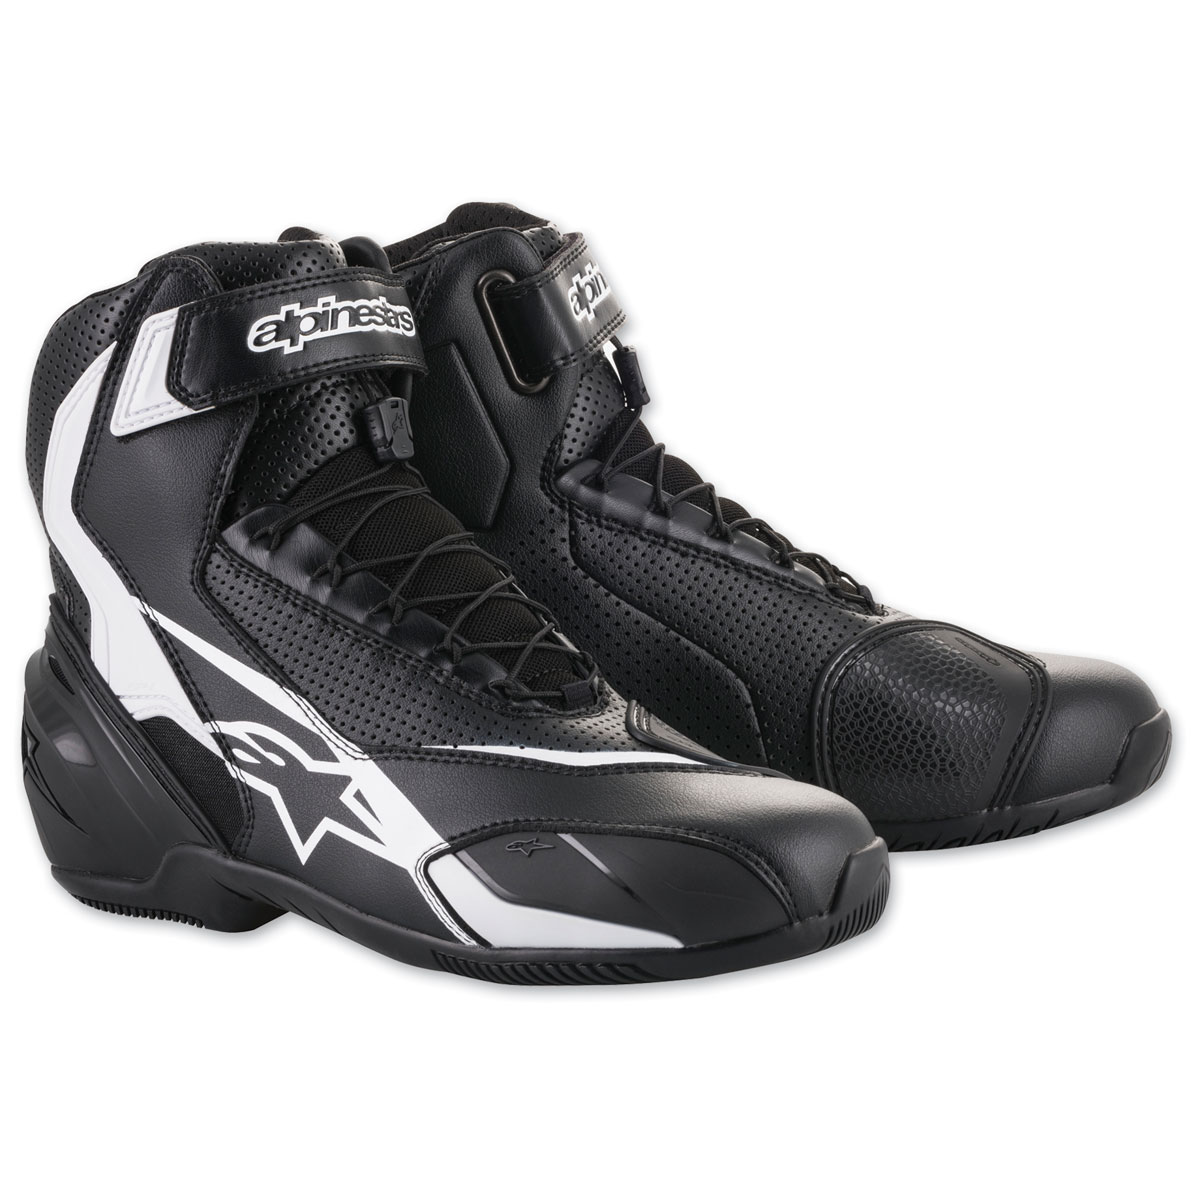 Alpinestars Men's SP-1 v2 Vented Black/White Boots